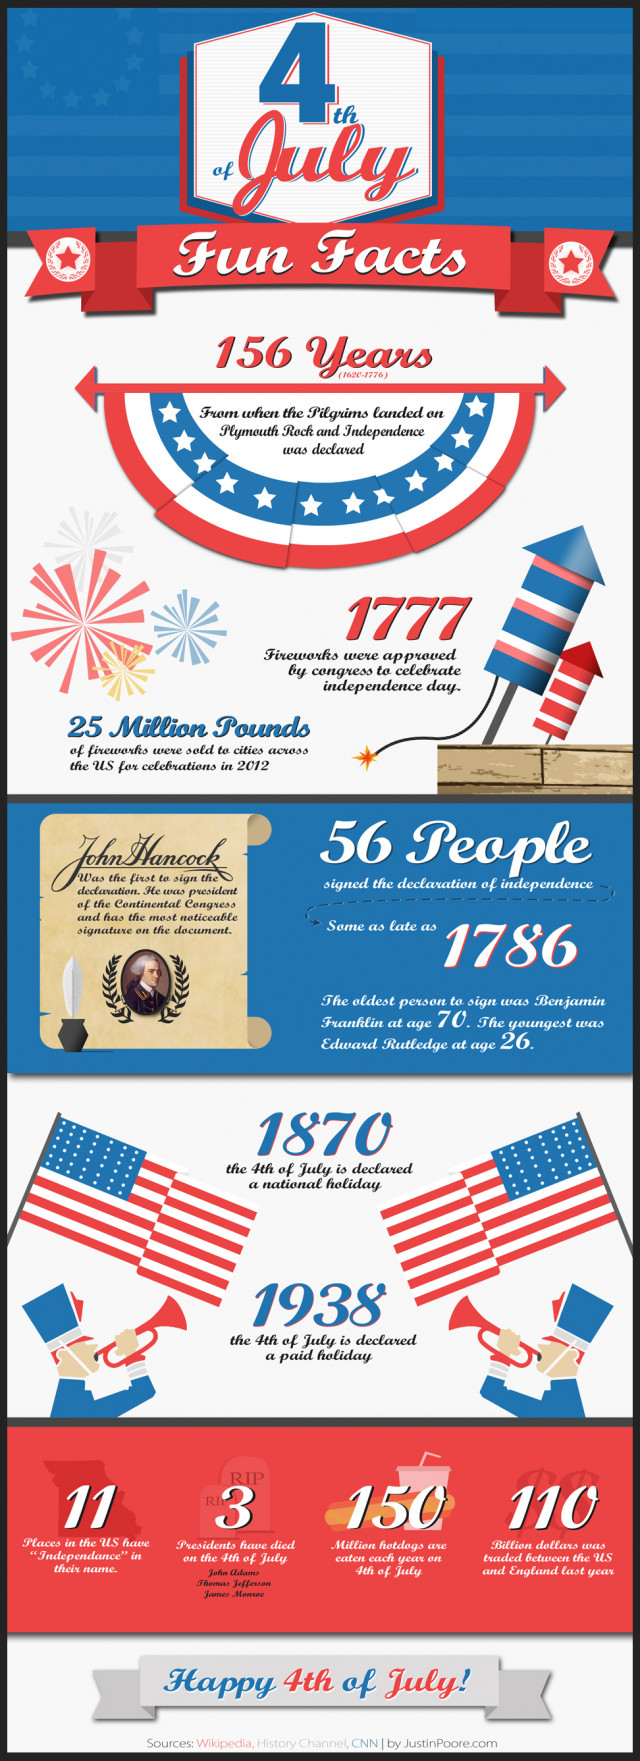 4th of July Fun Facts